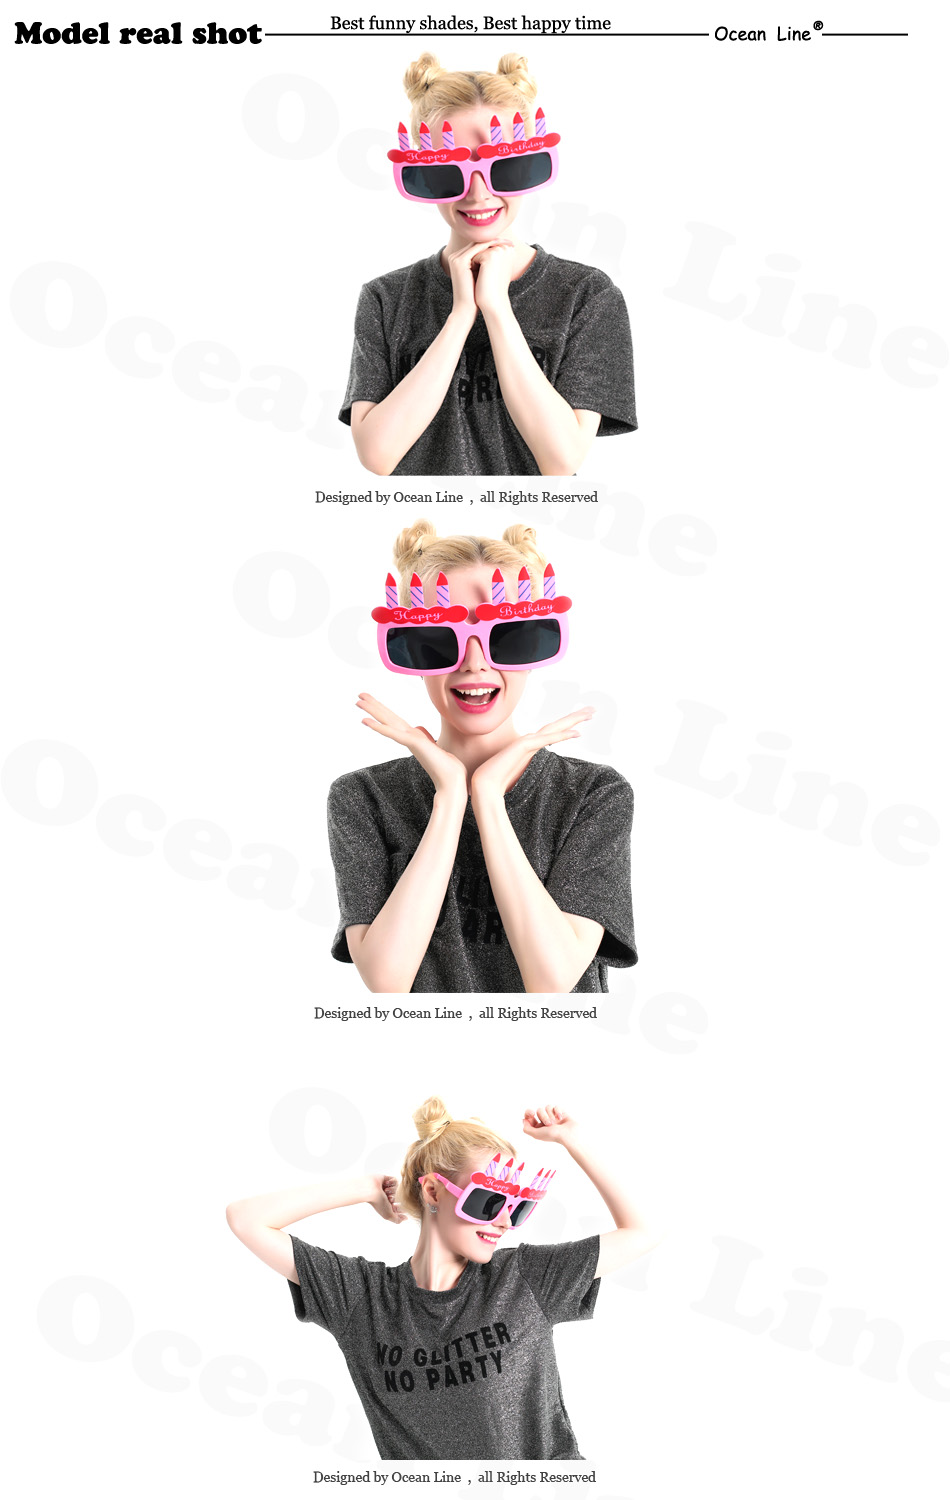 1 Giant Birthday Cake Candles Happy Props Sunglasses